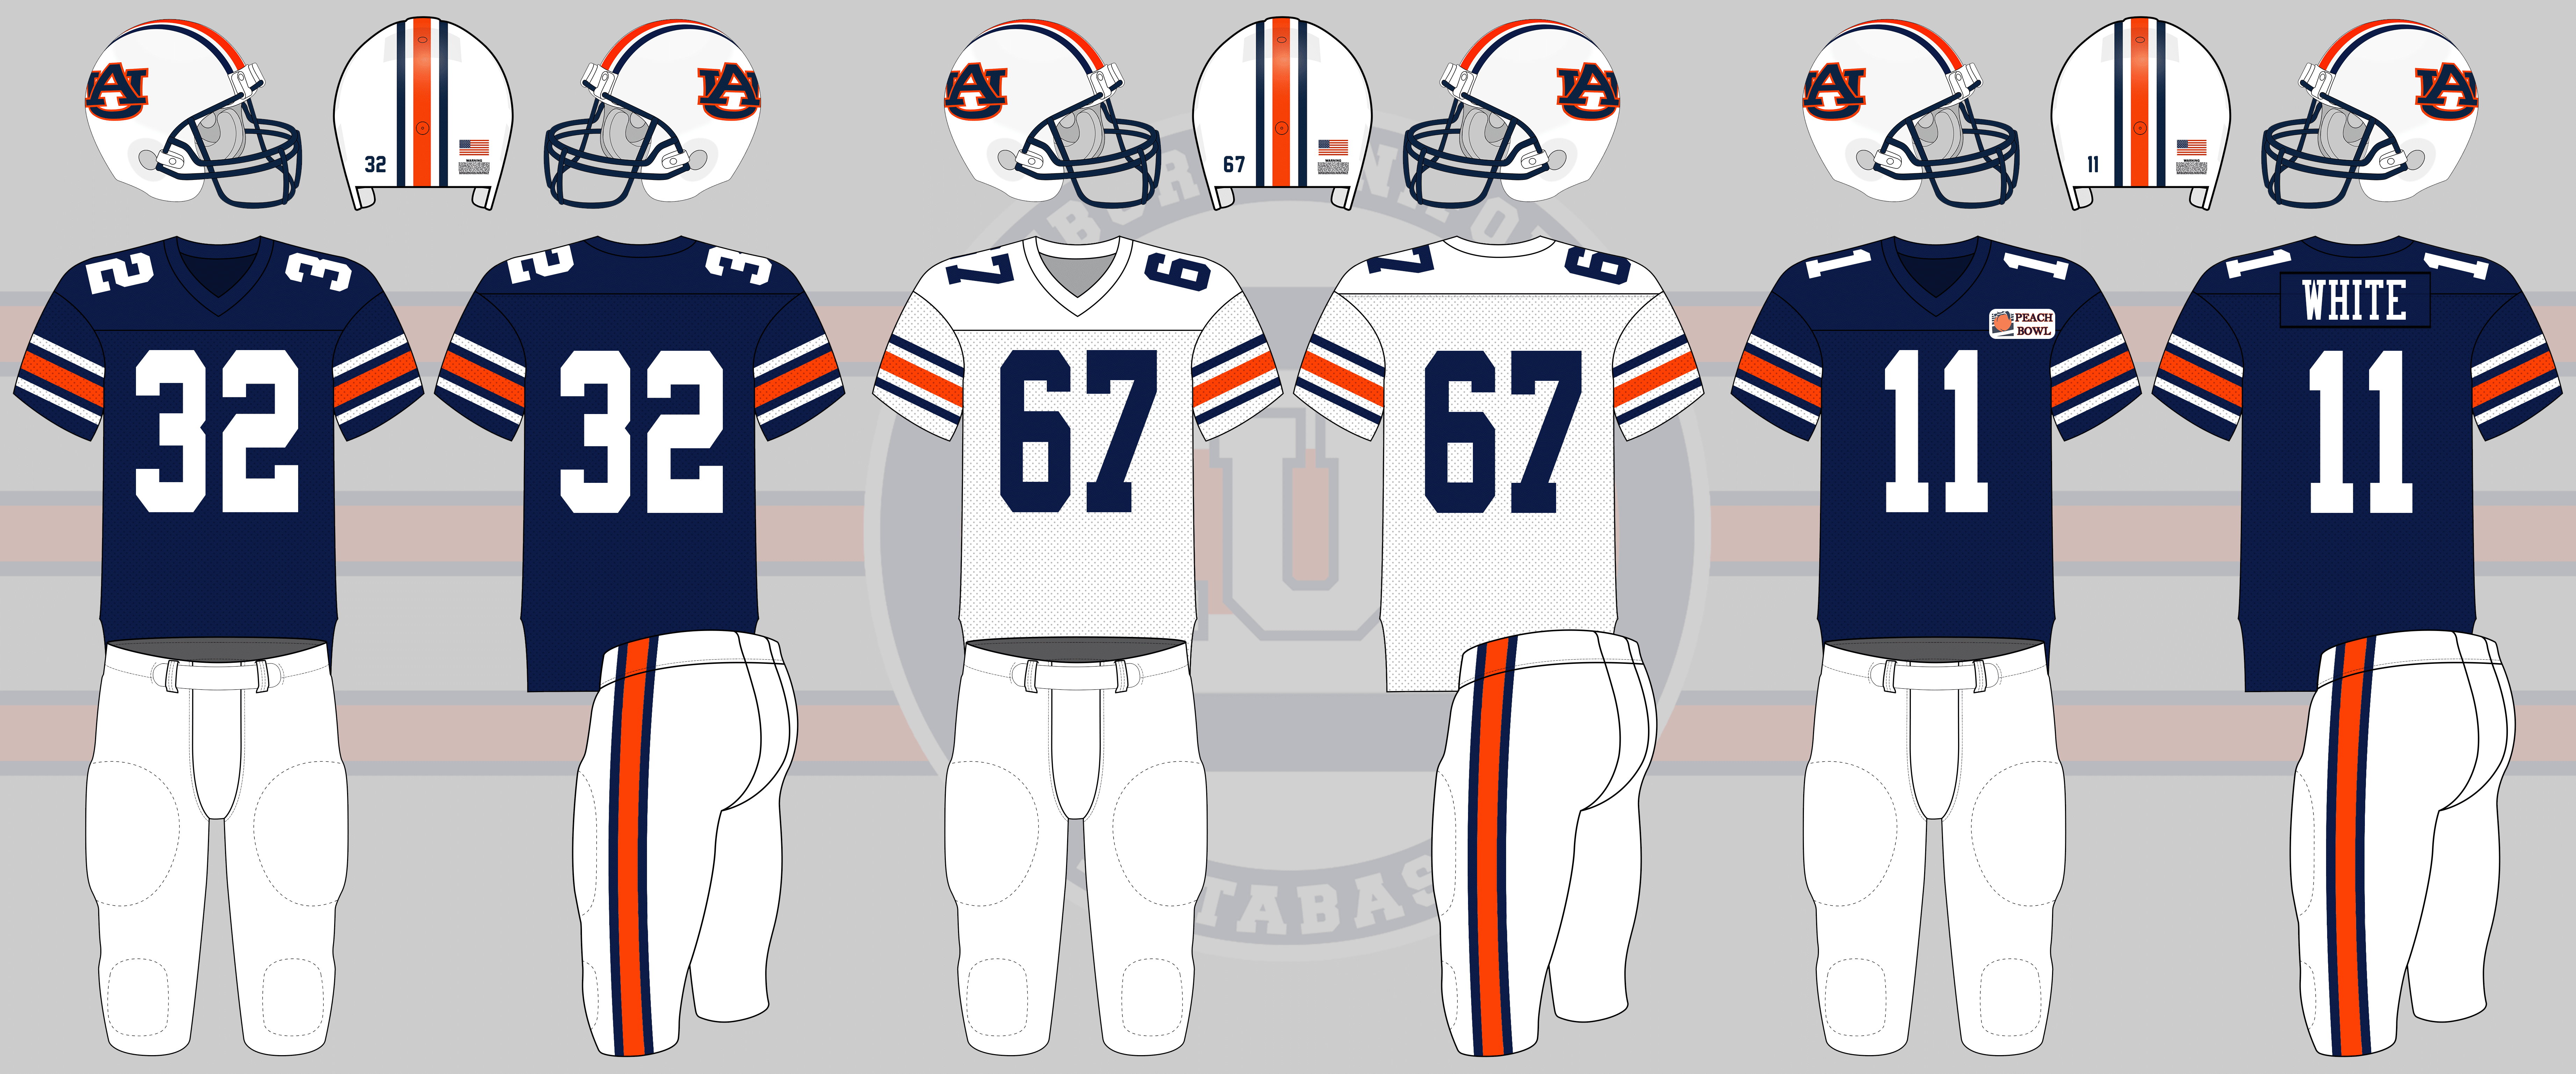 422ebad01a21 Nameplates were worn for the Peach Bowl. The bowl patch was also worn on  the chest for the first time